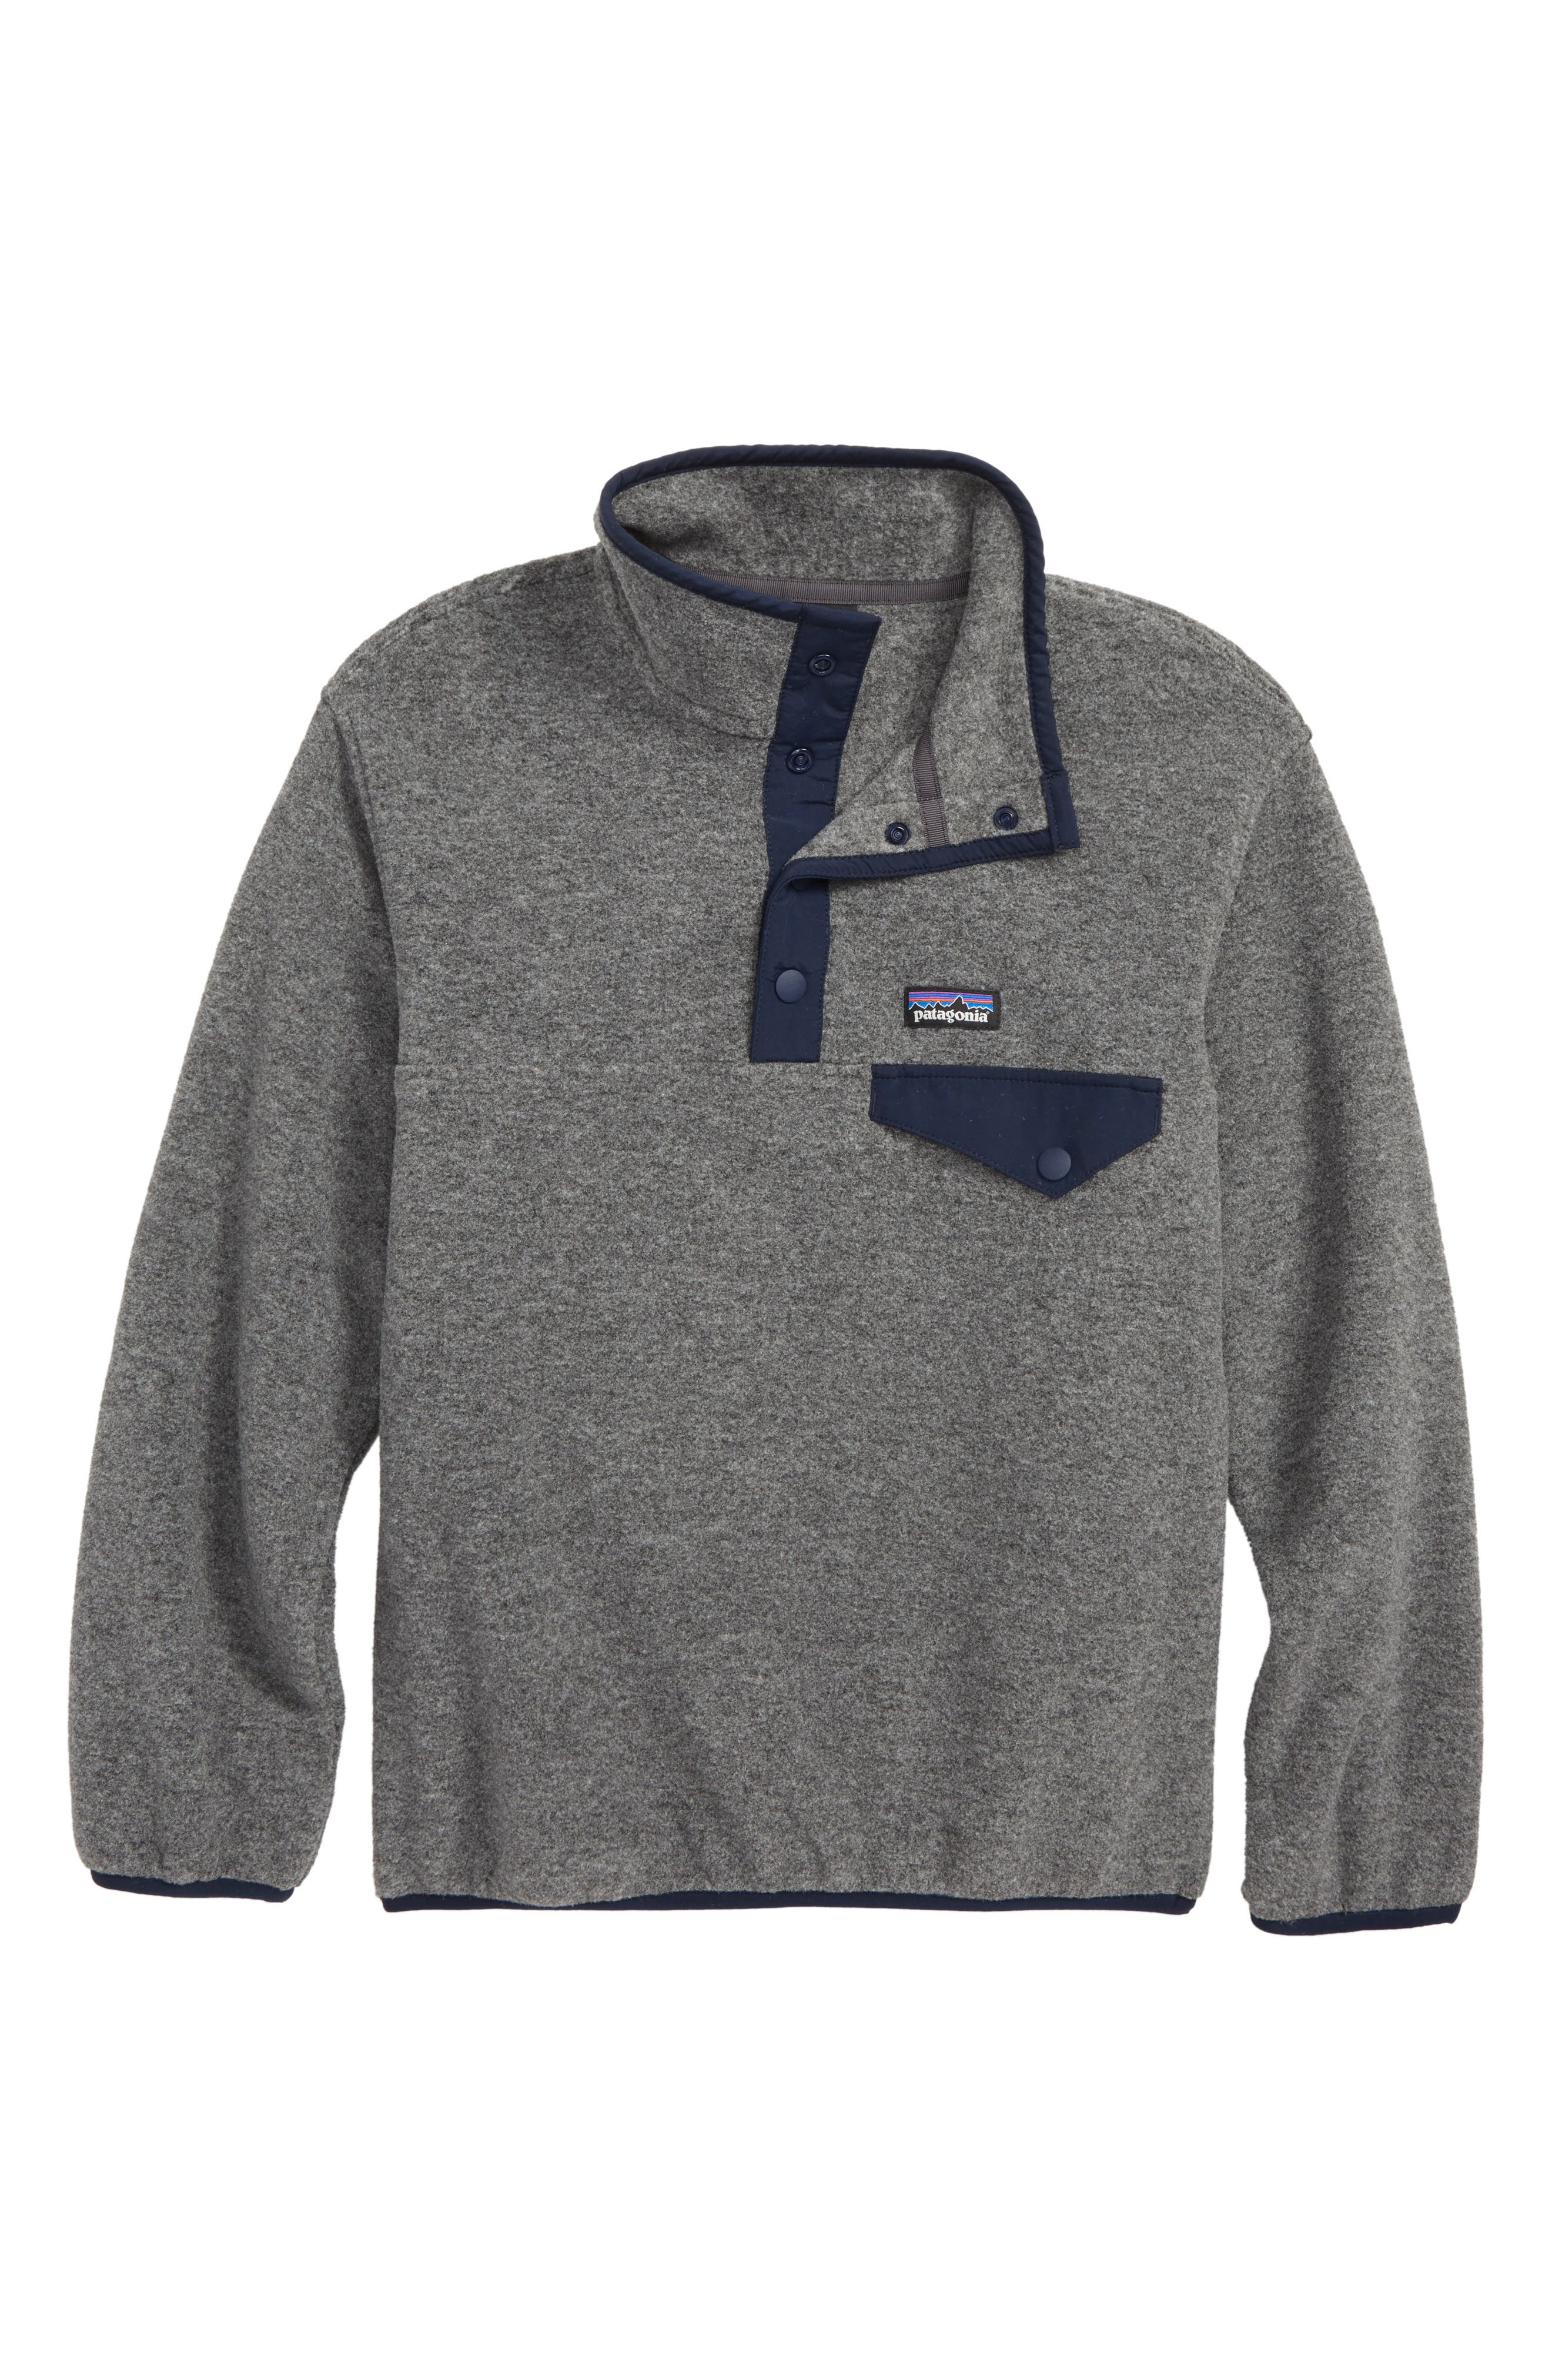 Synchilla<sup>®</sup> Snap-T<sup>®</sup> Fleece Pullover,                             Main thumbnail 1, color,                             NAVY